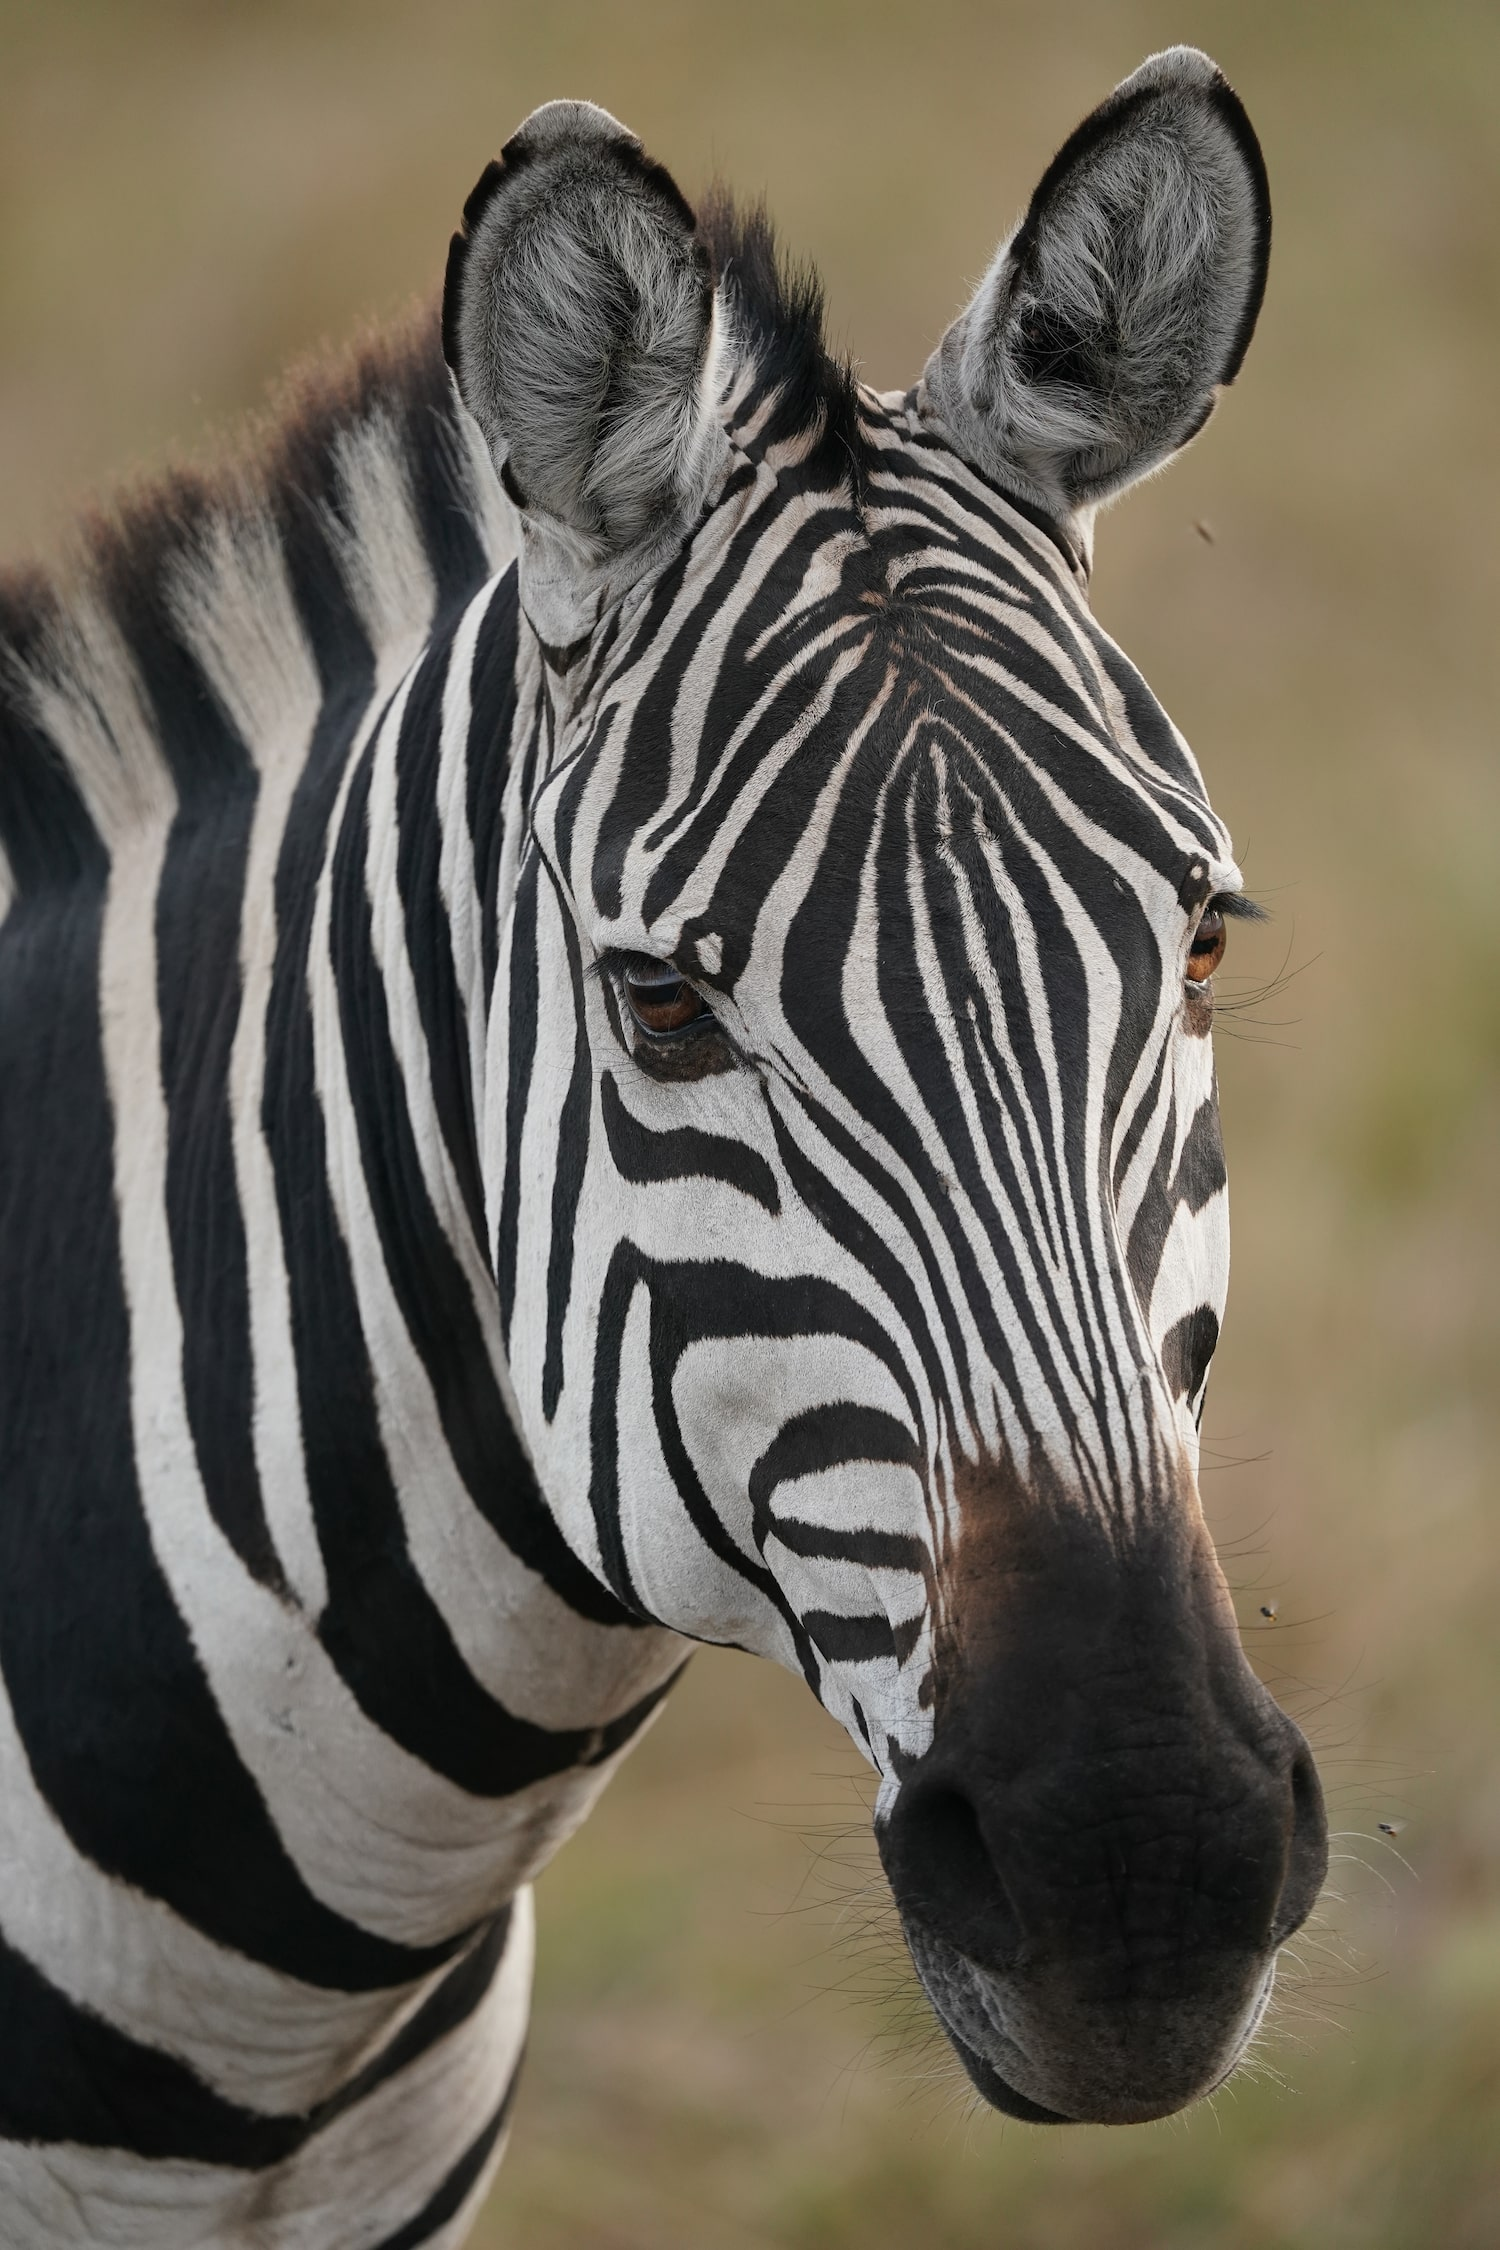 face-shot-zebra-portrait-alpha-7III